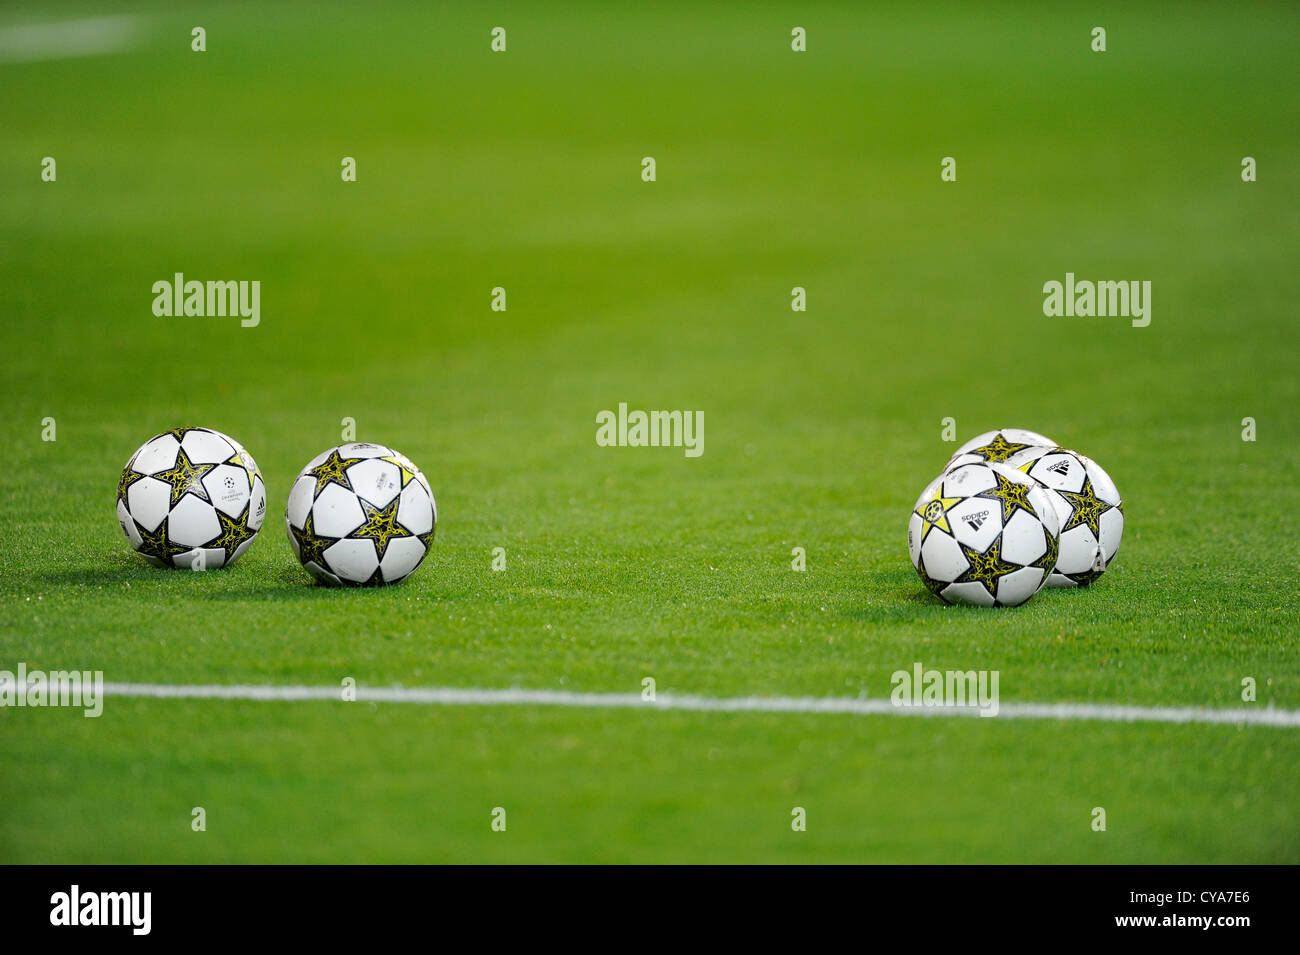 five UEFA Champions League Balls Adidas Finale 12 OMB on football pitch - Stock Image